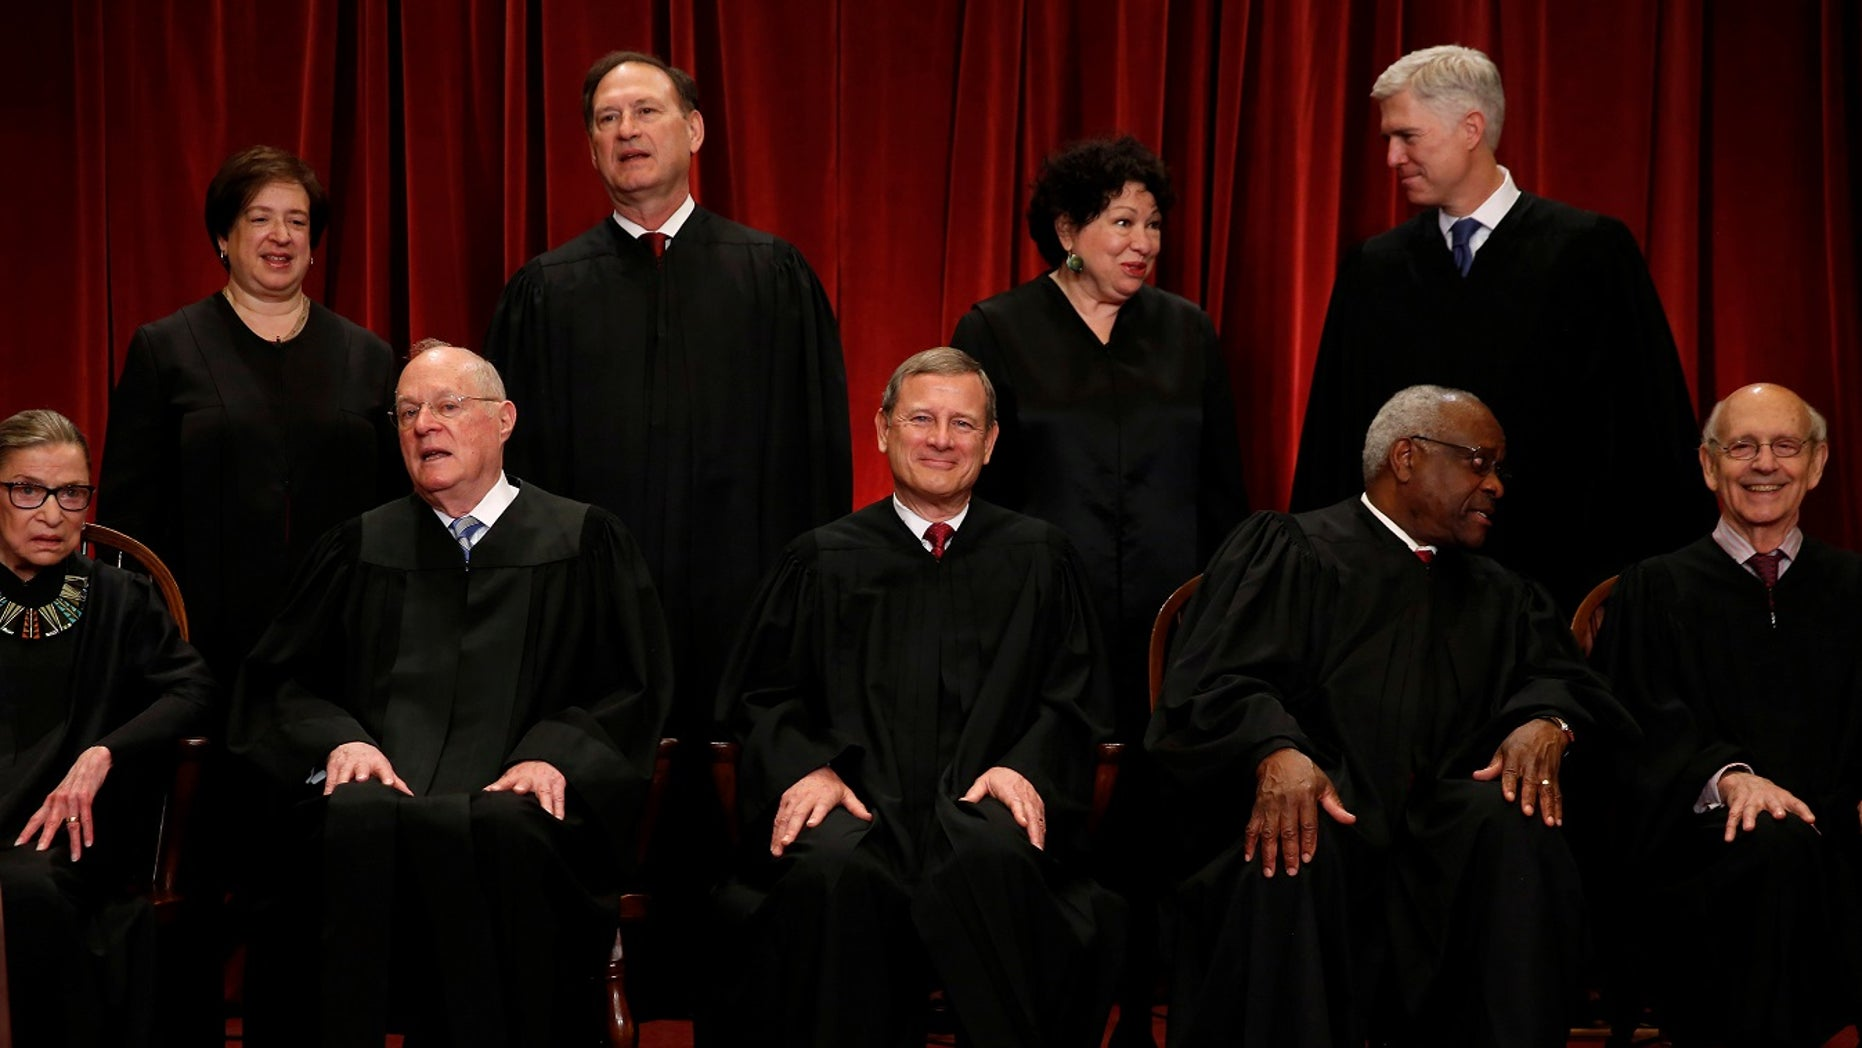 The nine justices of the U.S. Supreme Court. Front row: Ruth Bader Ginsburg, Anthony Kennedy, Chief Justice John Roberts, Clarence Thomas and Stephen Breyer. Back row: Elena Kagan, Samuel Alito, Sonya Sotomayor and Neil Gorsuch.